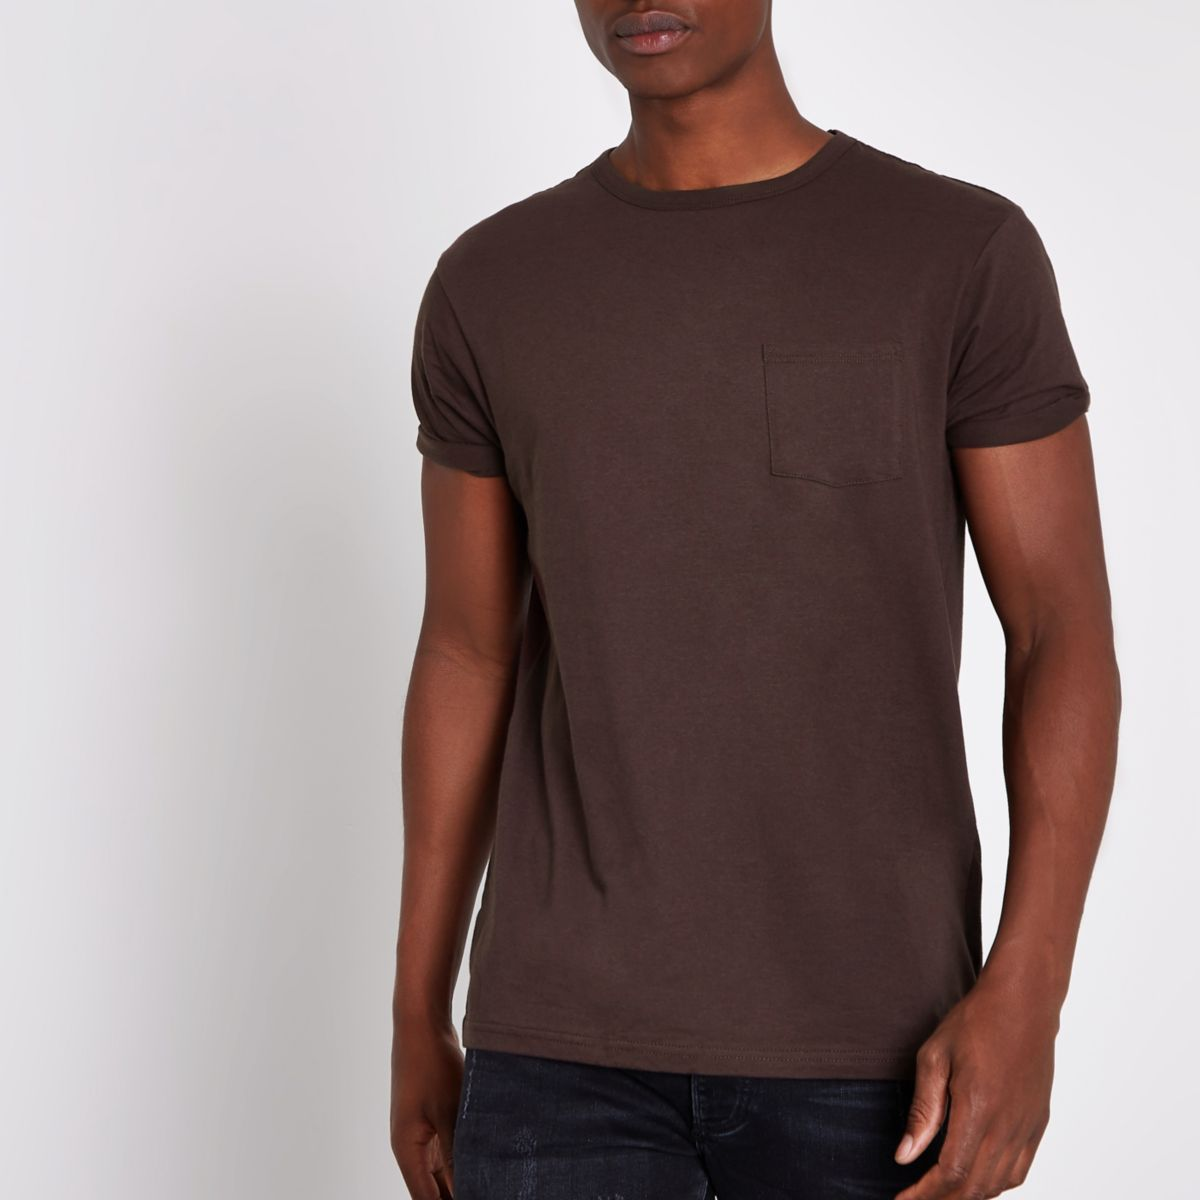 Dark brown chest pocket short sleeve t shirt t shirts for Black brown mens shirts